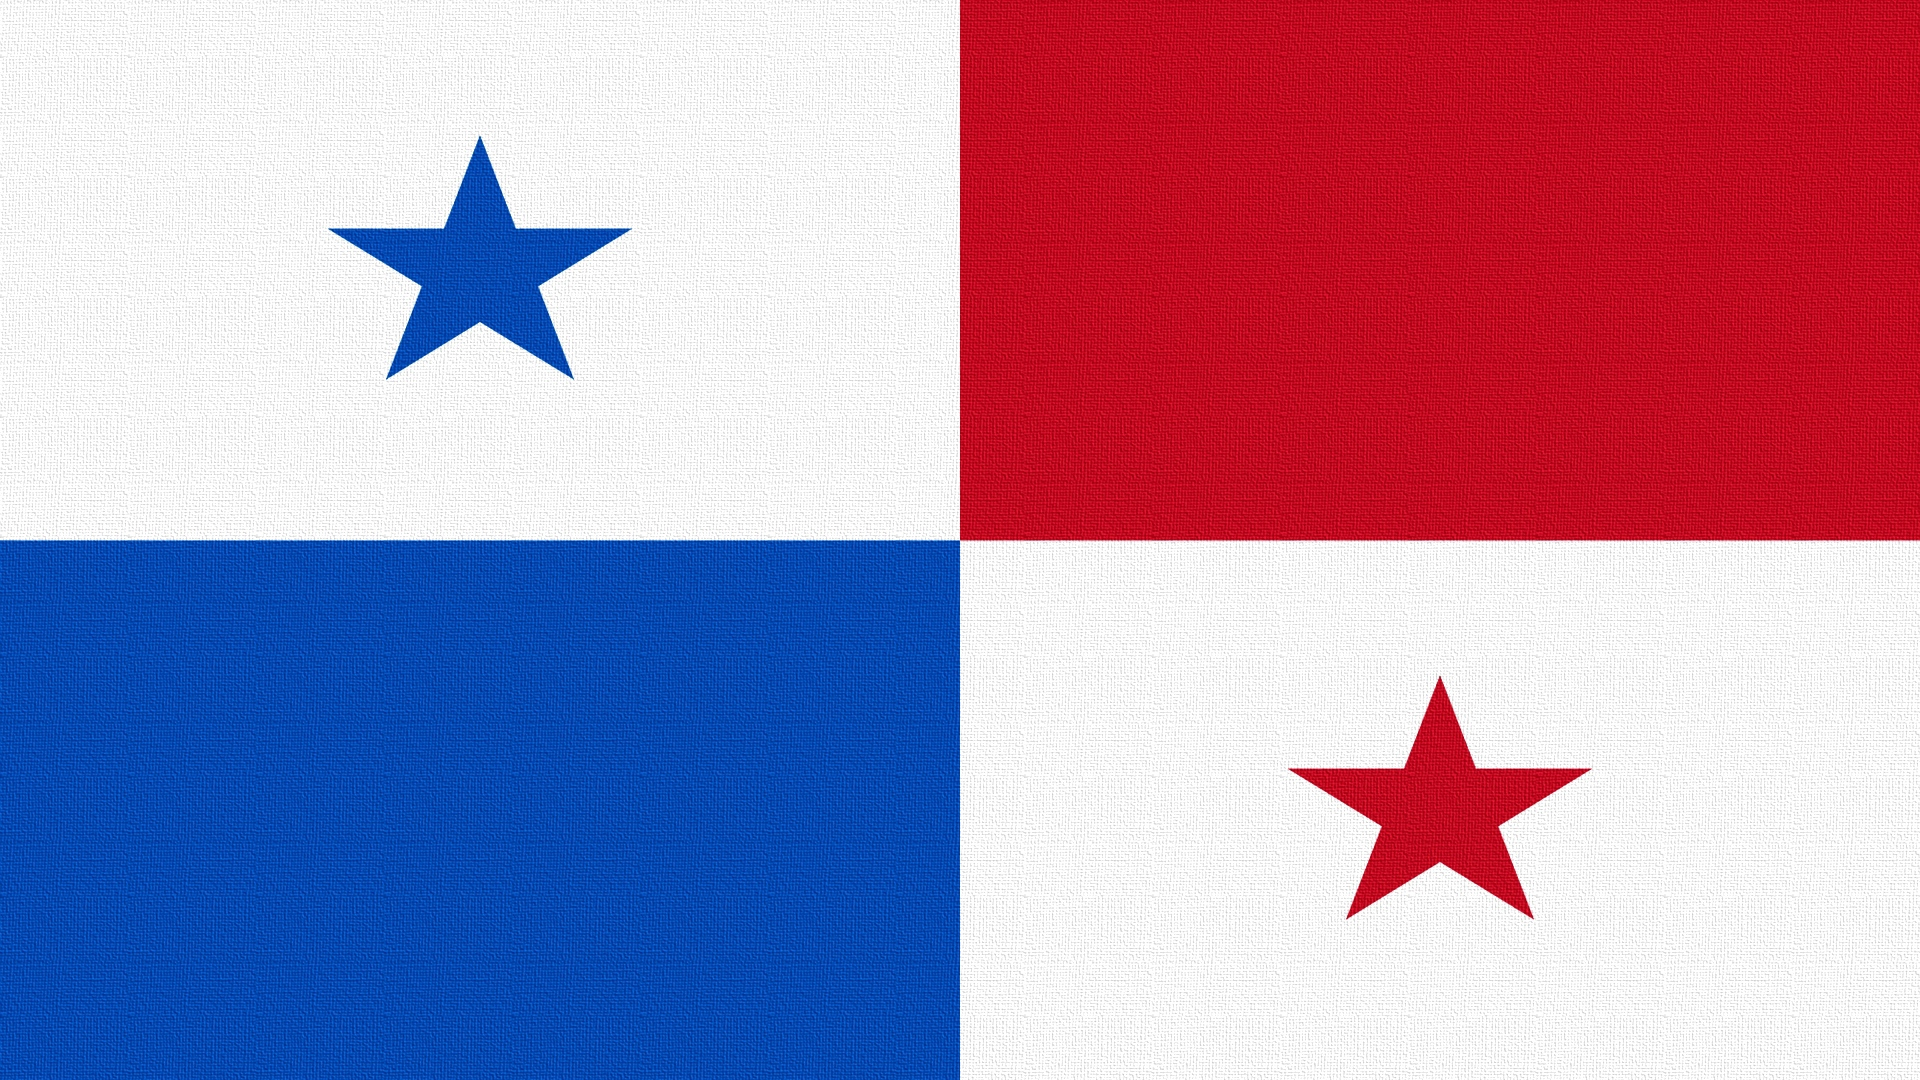 Download wallpaper 1920x1080 star flag panama hd background 1920x1080